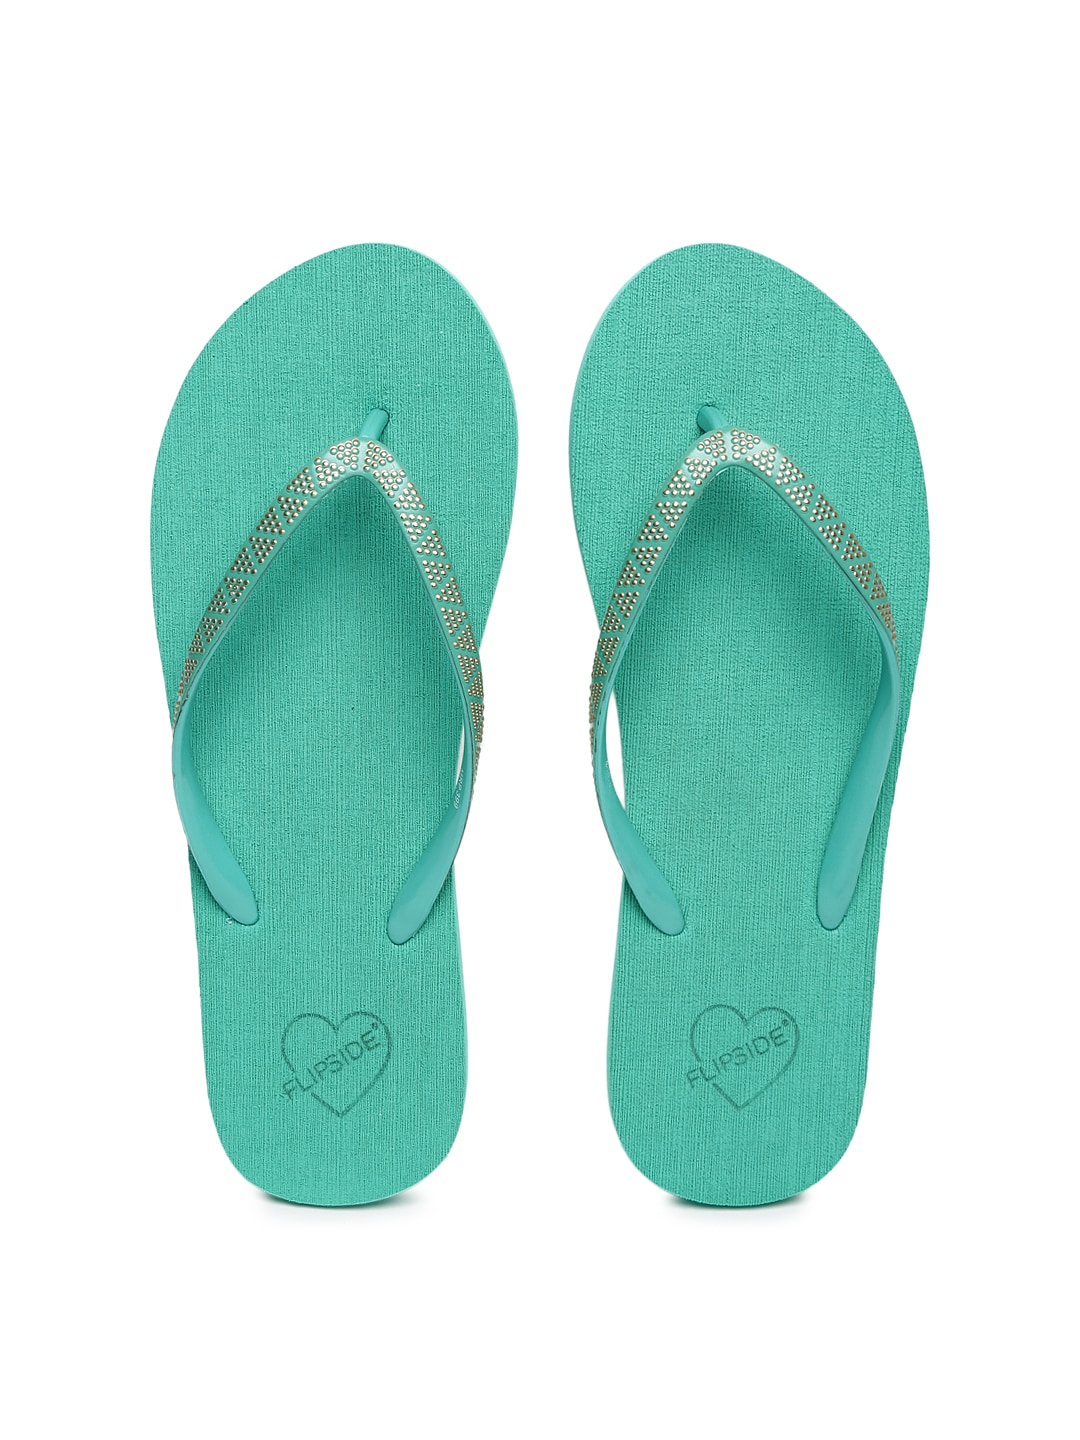 cb1bee2c190240 Green Flip Flops Candles - Buy Green Flip Flops Candles online in India